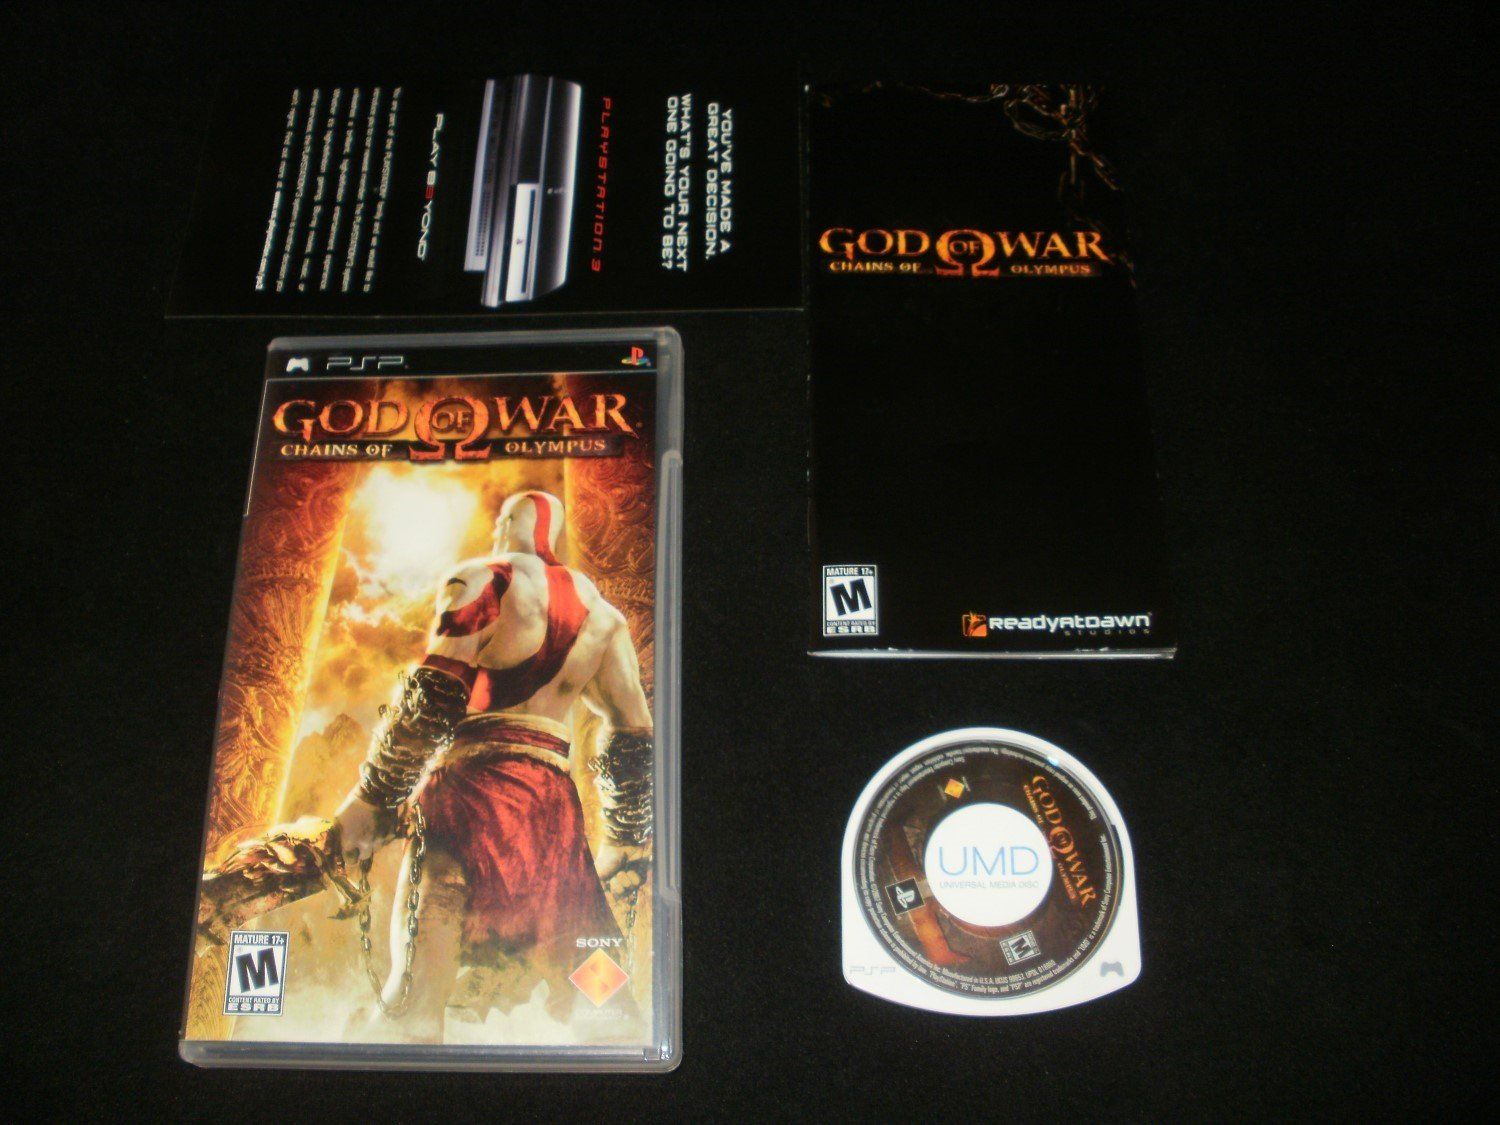 God of War Chains of Olympus - Sony PSP - Complete CIB